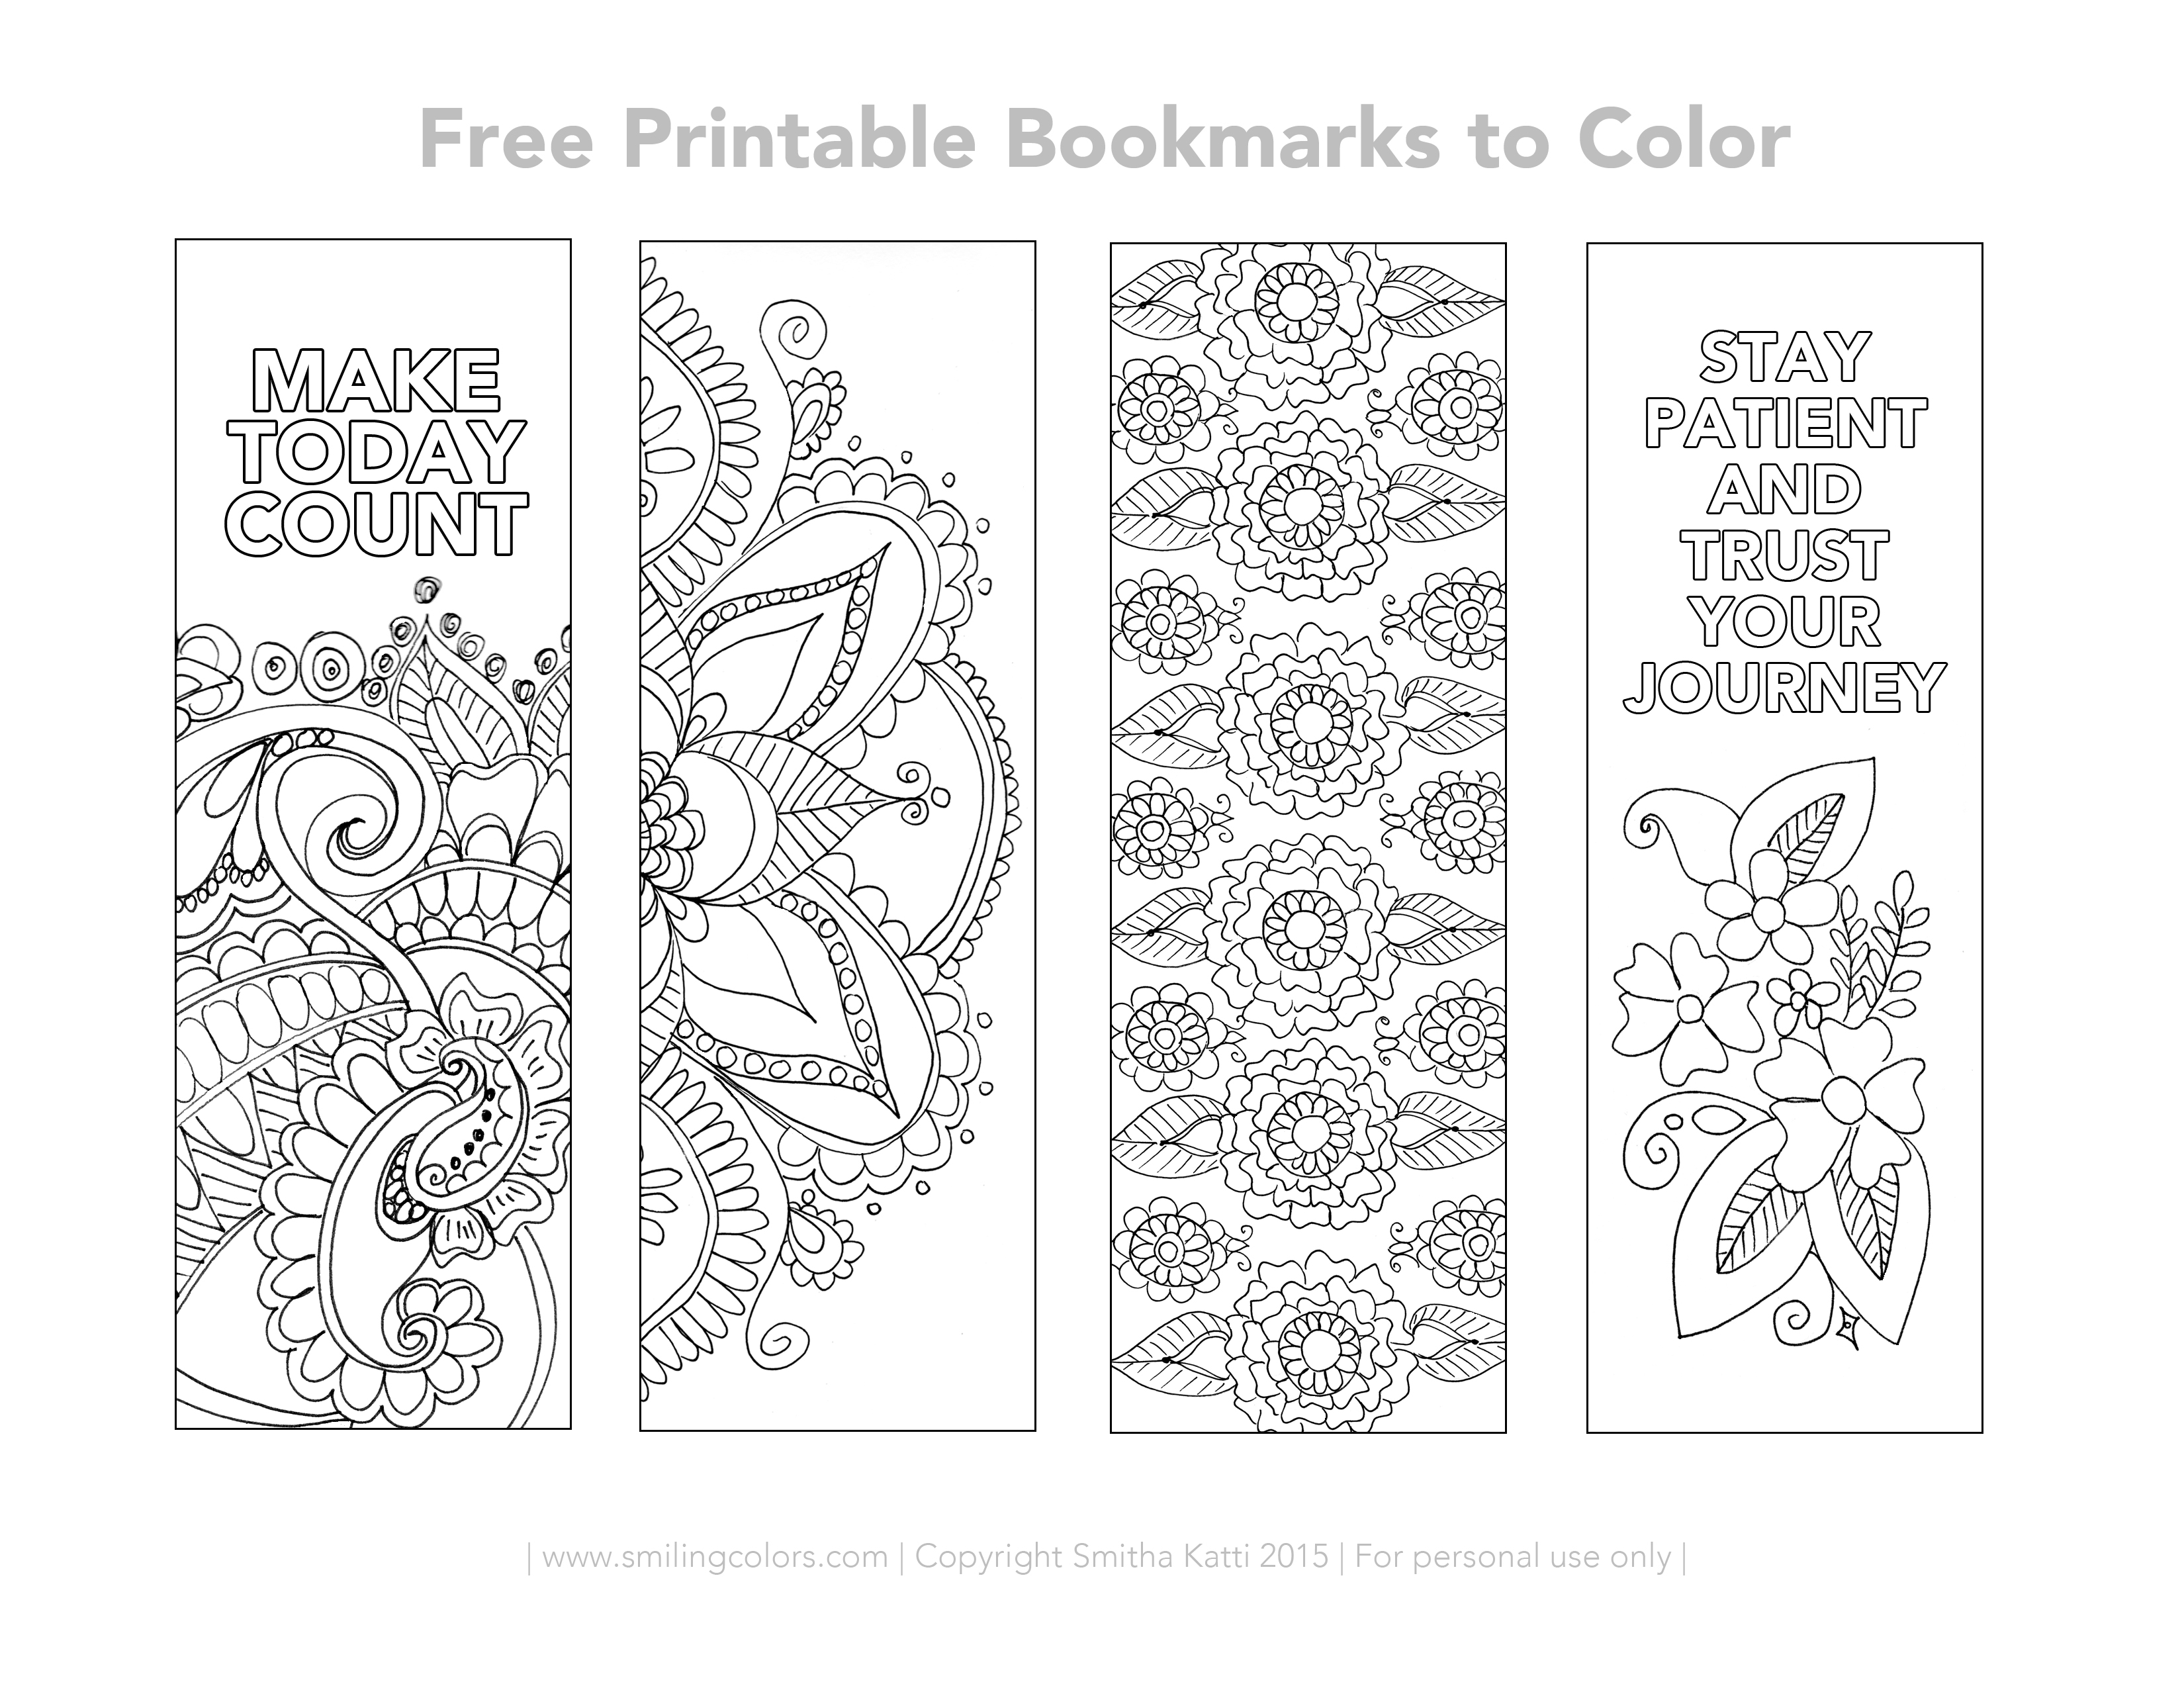 Free Printable Bookmarks to color with intricate designs